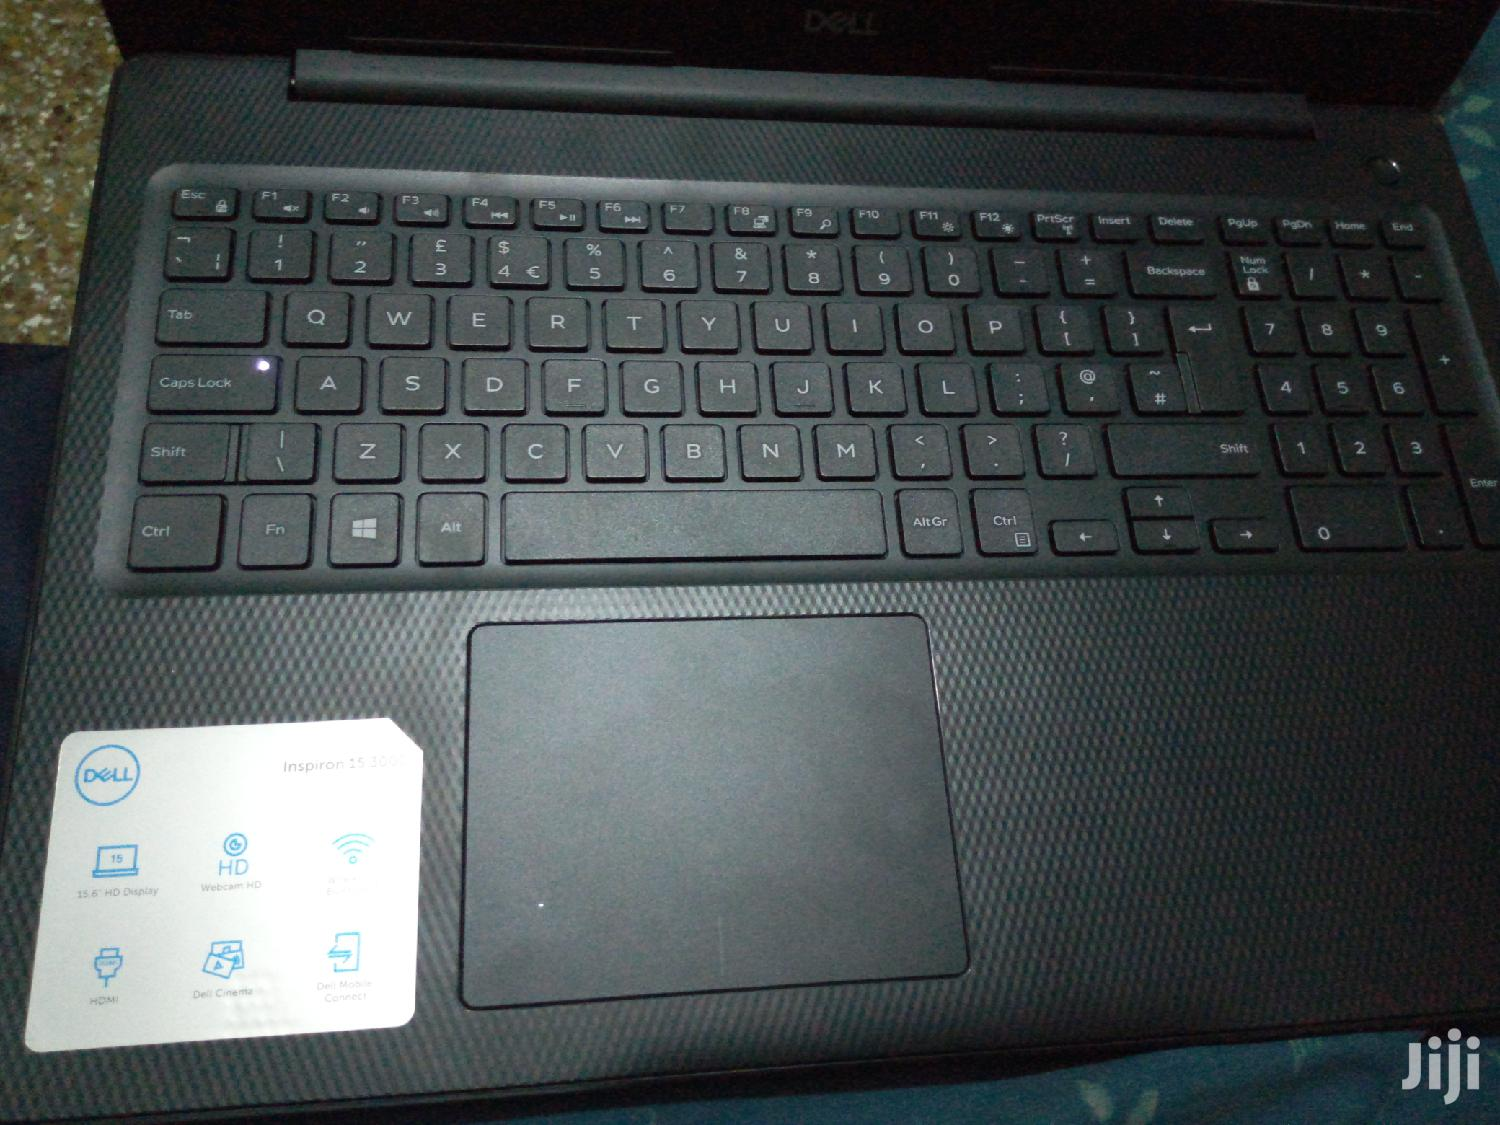 Laptop Dell Inspiron 15 3000 4GB Intel Celeron HDD 500GB   Laptops & Computers for sale in Asokore Mampong Municipal, Ashanti, Ghana